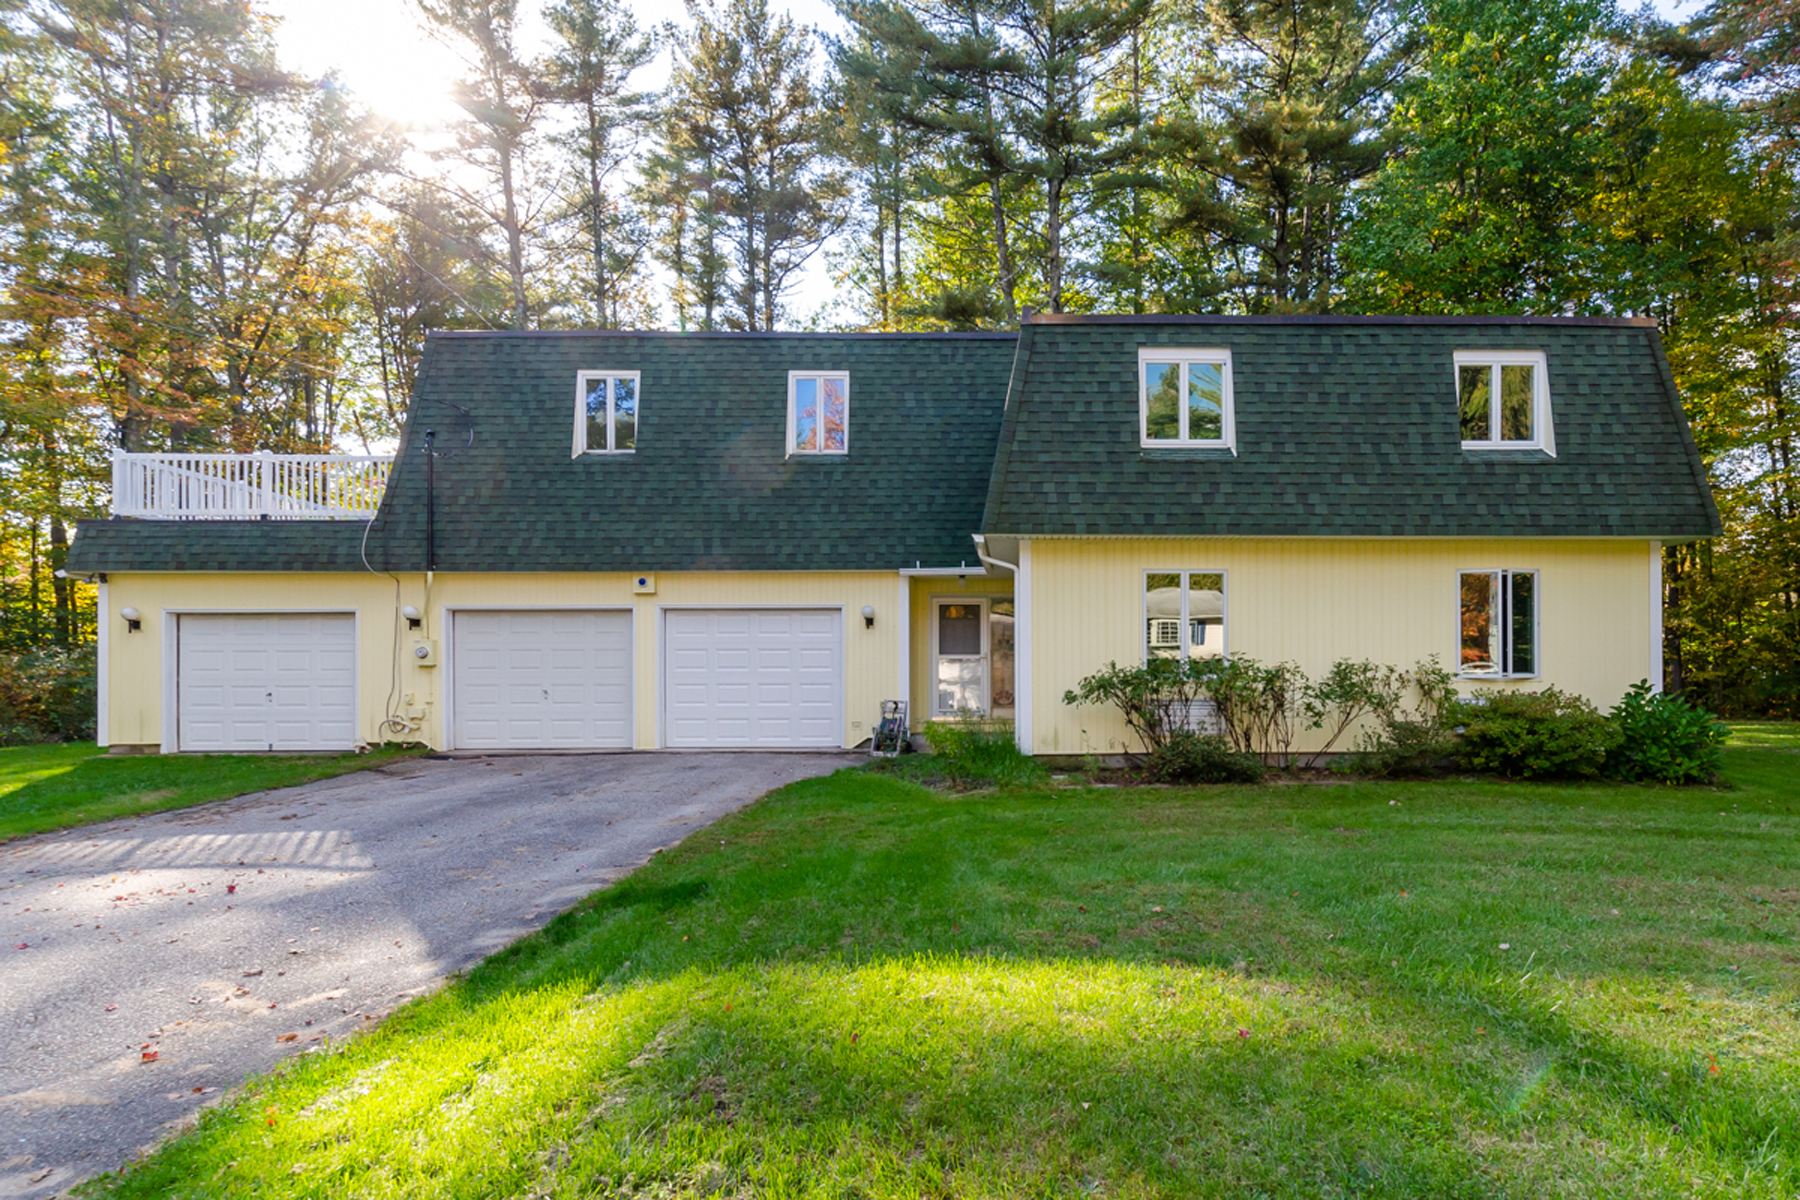 Single Family Home for Sale at 1 Mayflower Drive, Bedford 1 Mayflower Dr Bedford, New Hampshire 03110 United States